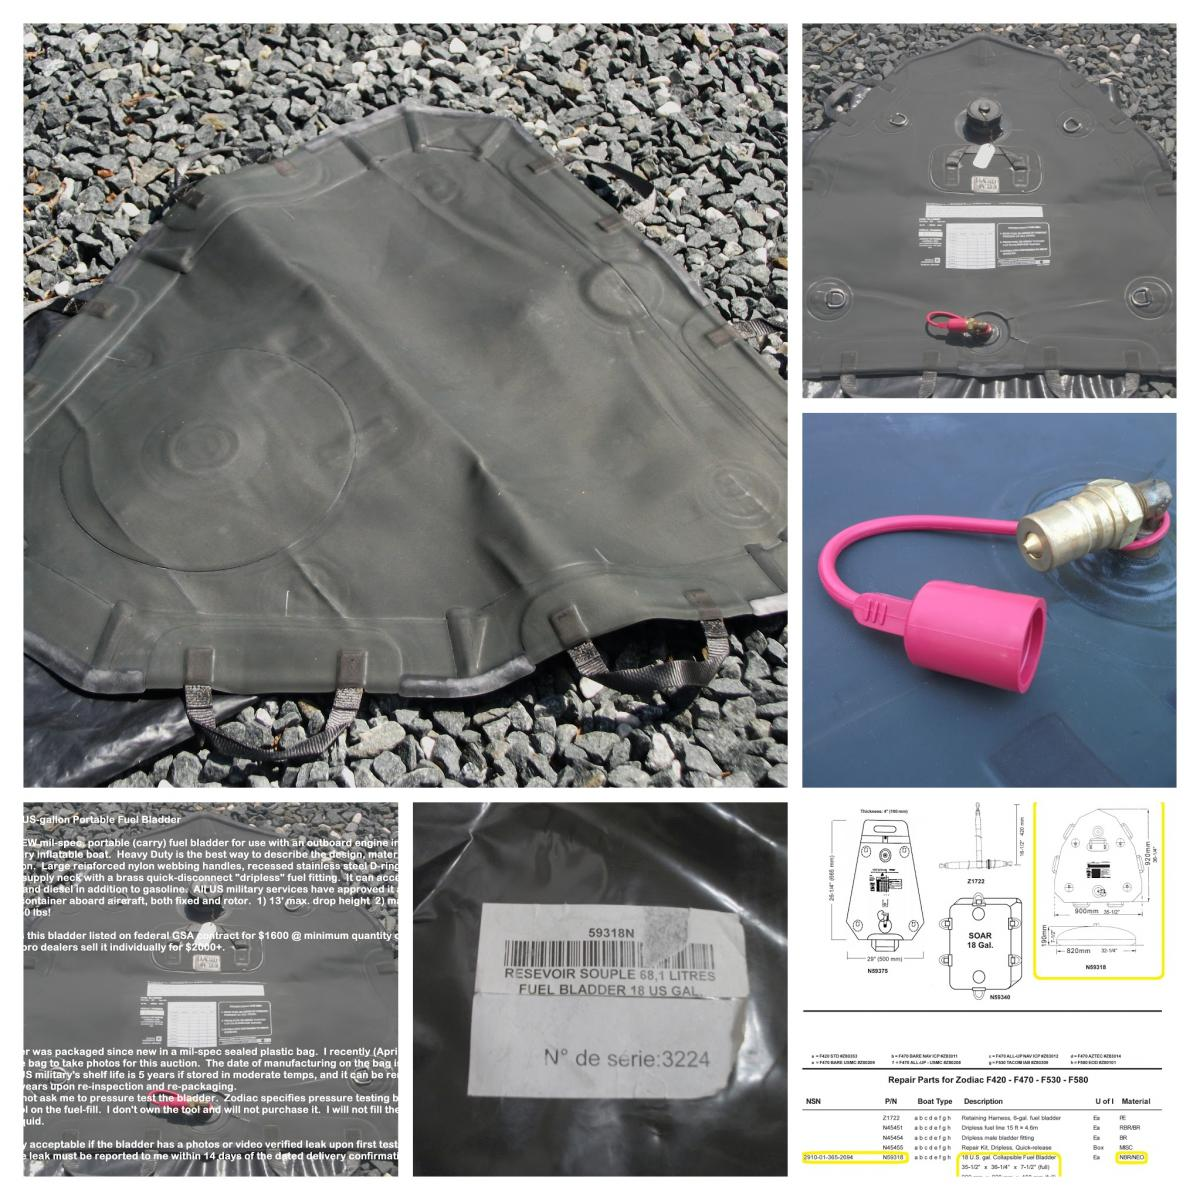 Click image for larger version  Name:Fuel Bladder 18 - Photo-COLLAGE.jpg Views:210 Size:211.6 KB ID:124395